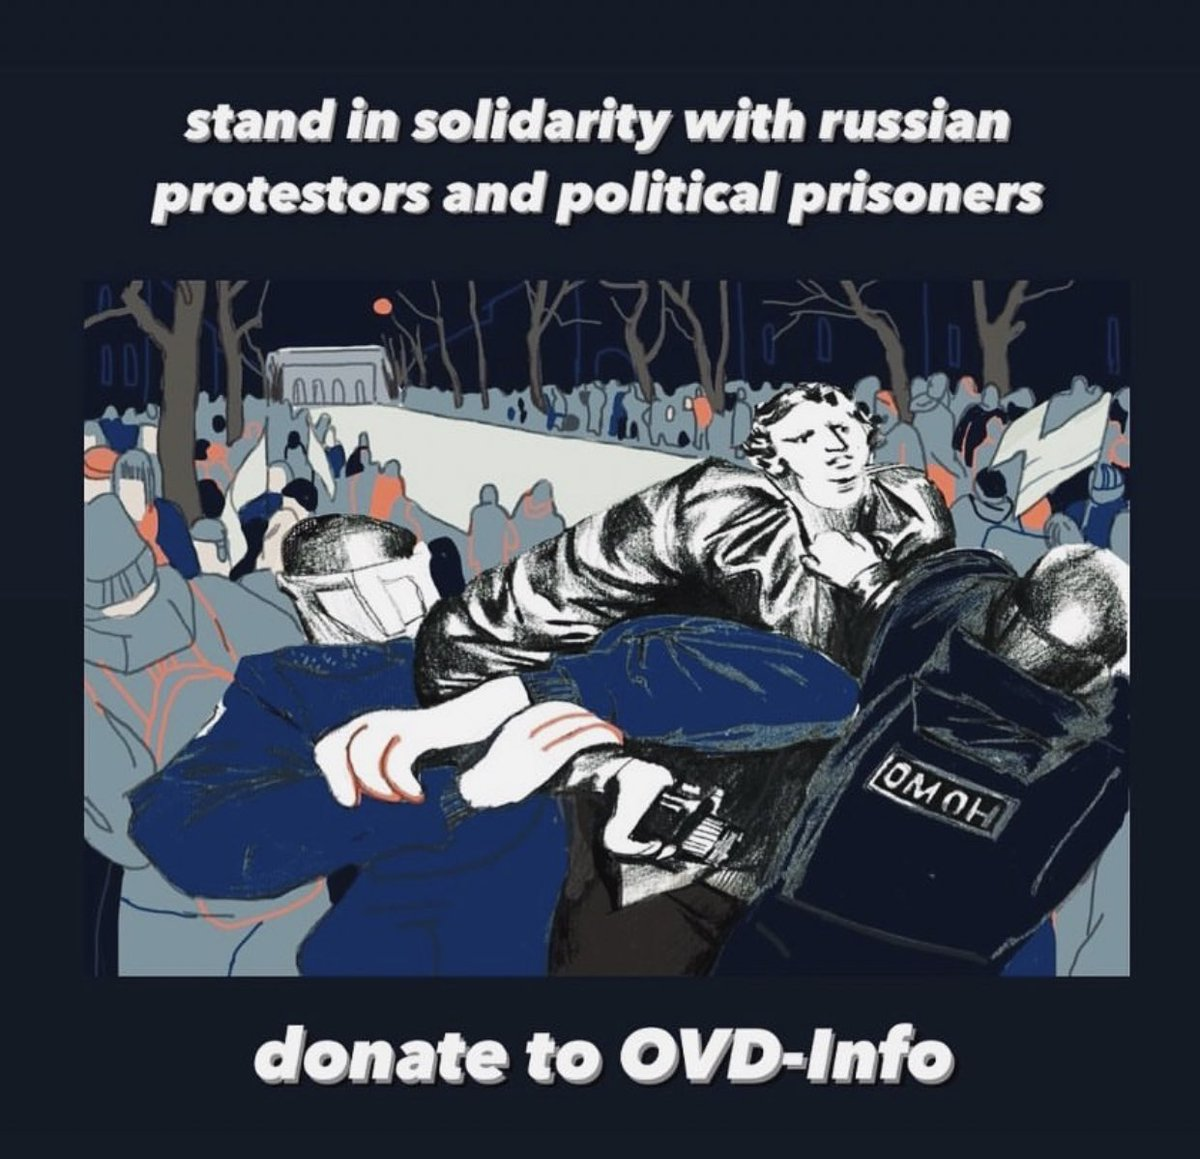 here's a link if anyone wants to donate to help the protestors in russia, note that the money sum is in russian rubles!